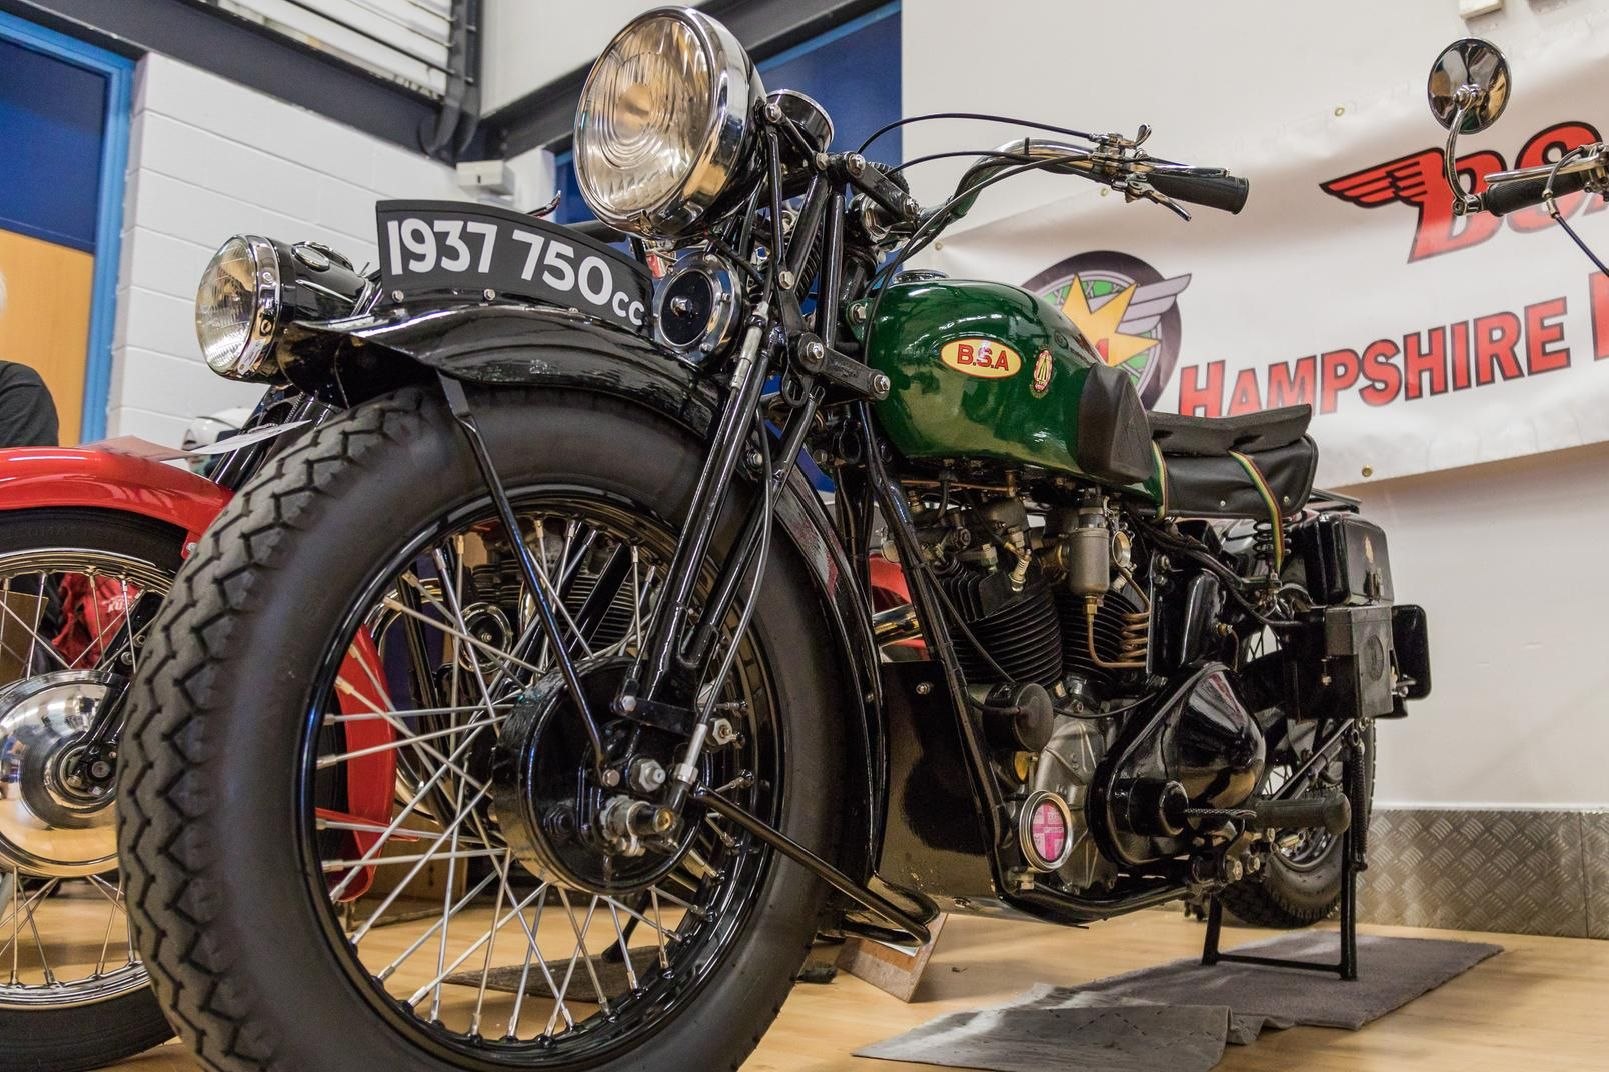 A rare BSA model Y13 from 1937. Picture: Mike Cooter